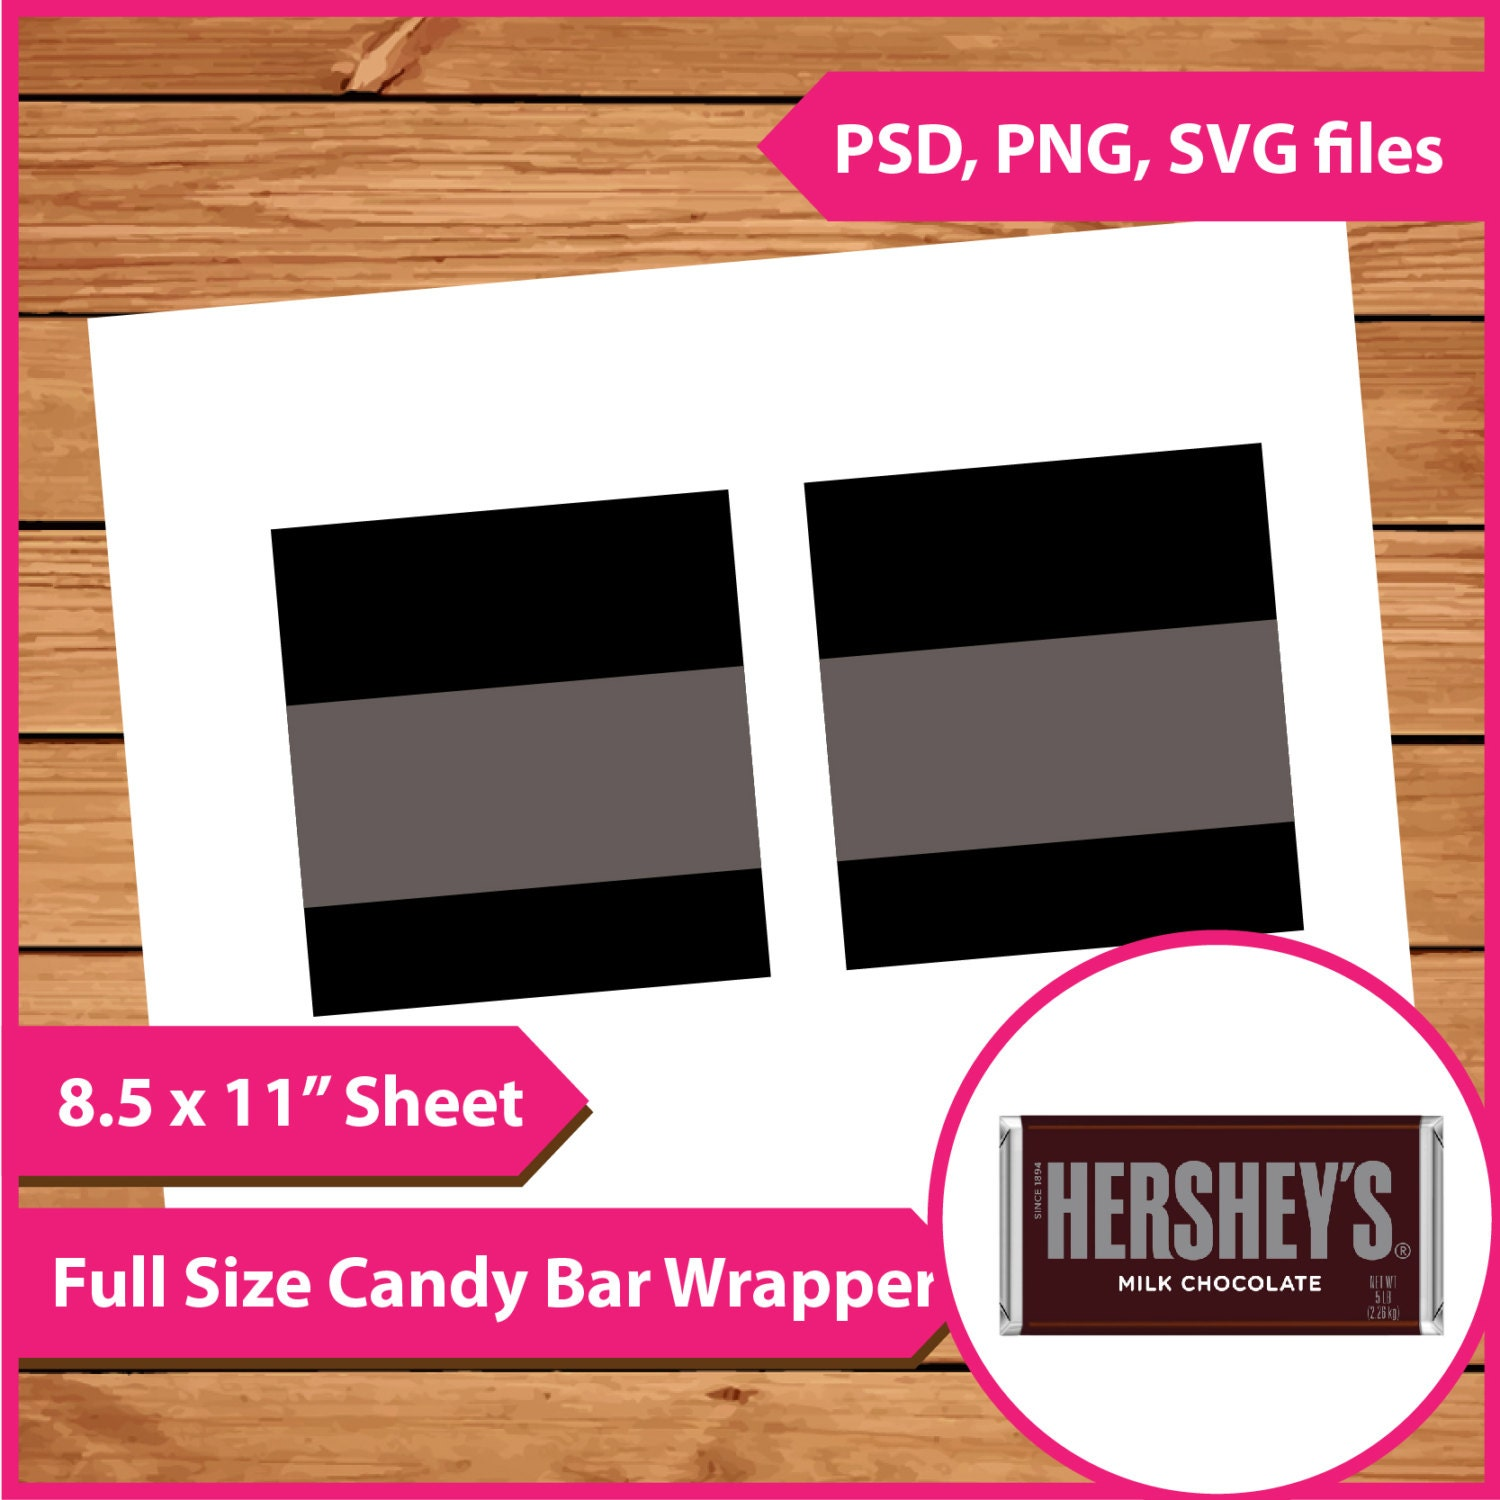 hershey candy bar wrapper template zoom here magic hershey candy bar wrappers template. Black Bedroom Furniture Sets. Home Design Ideas